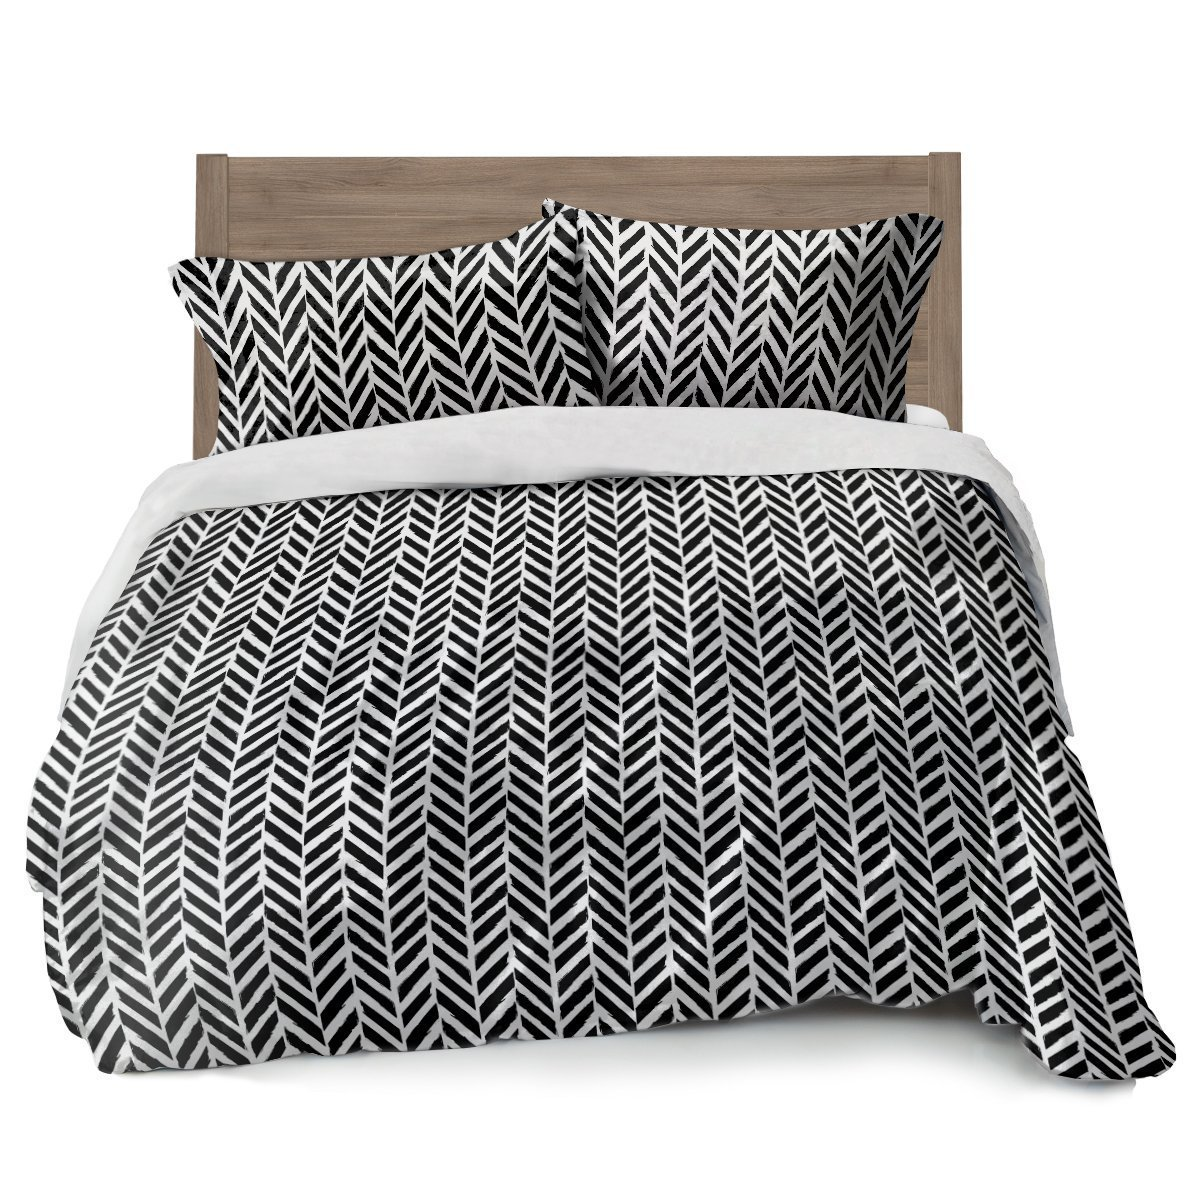 Full Queen Black and White Duvet Cover Herringbone Design w/ 2 Pillowcases by Where The Polka Dots Roam